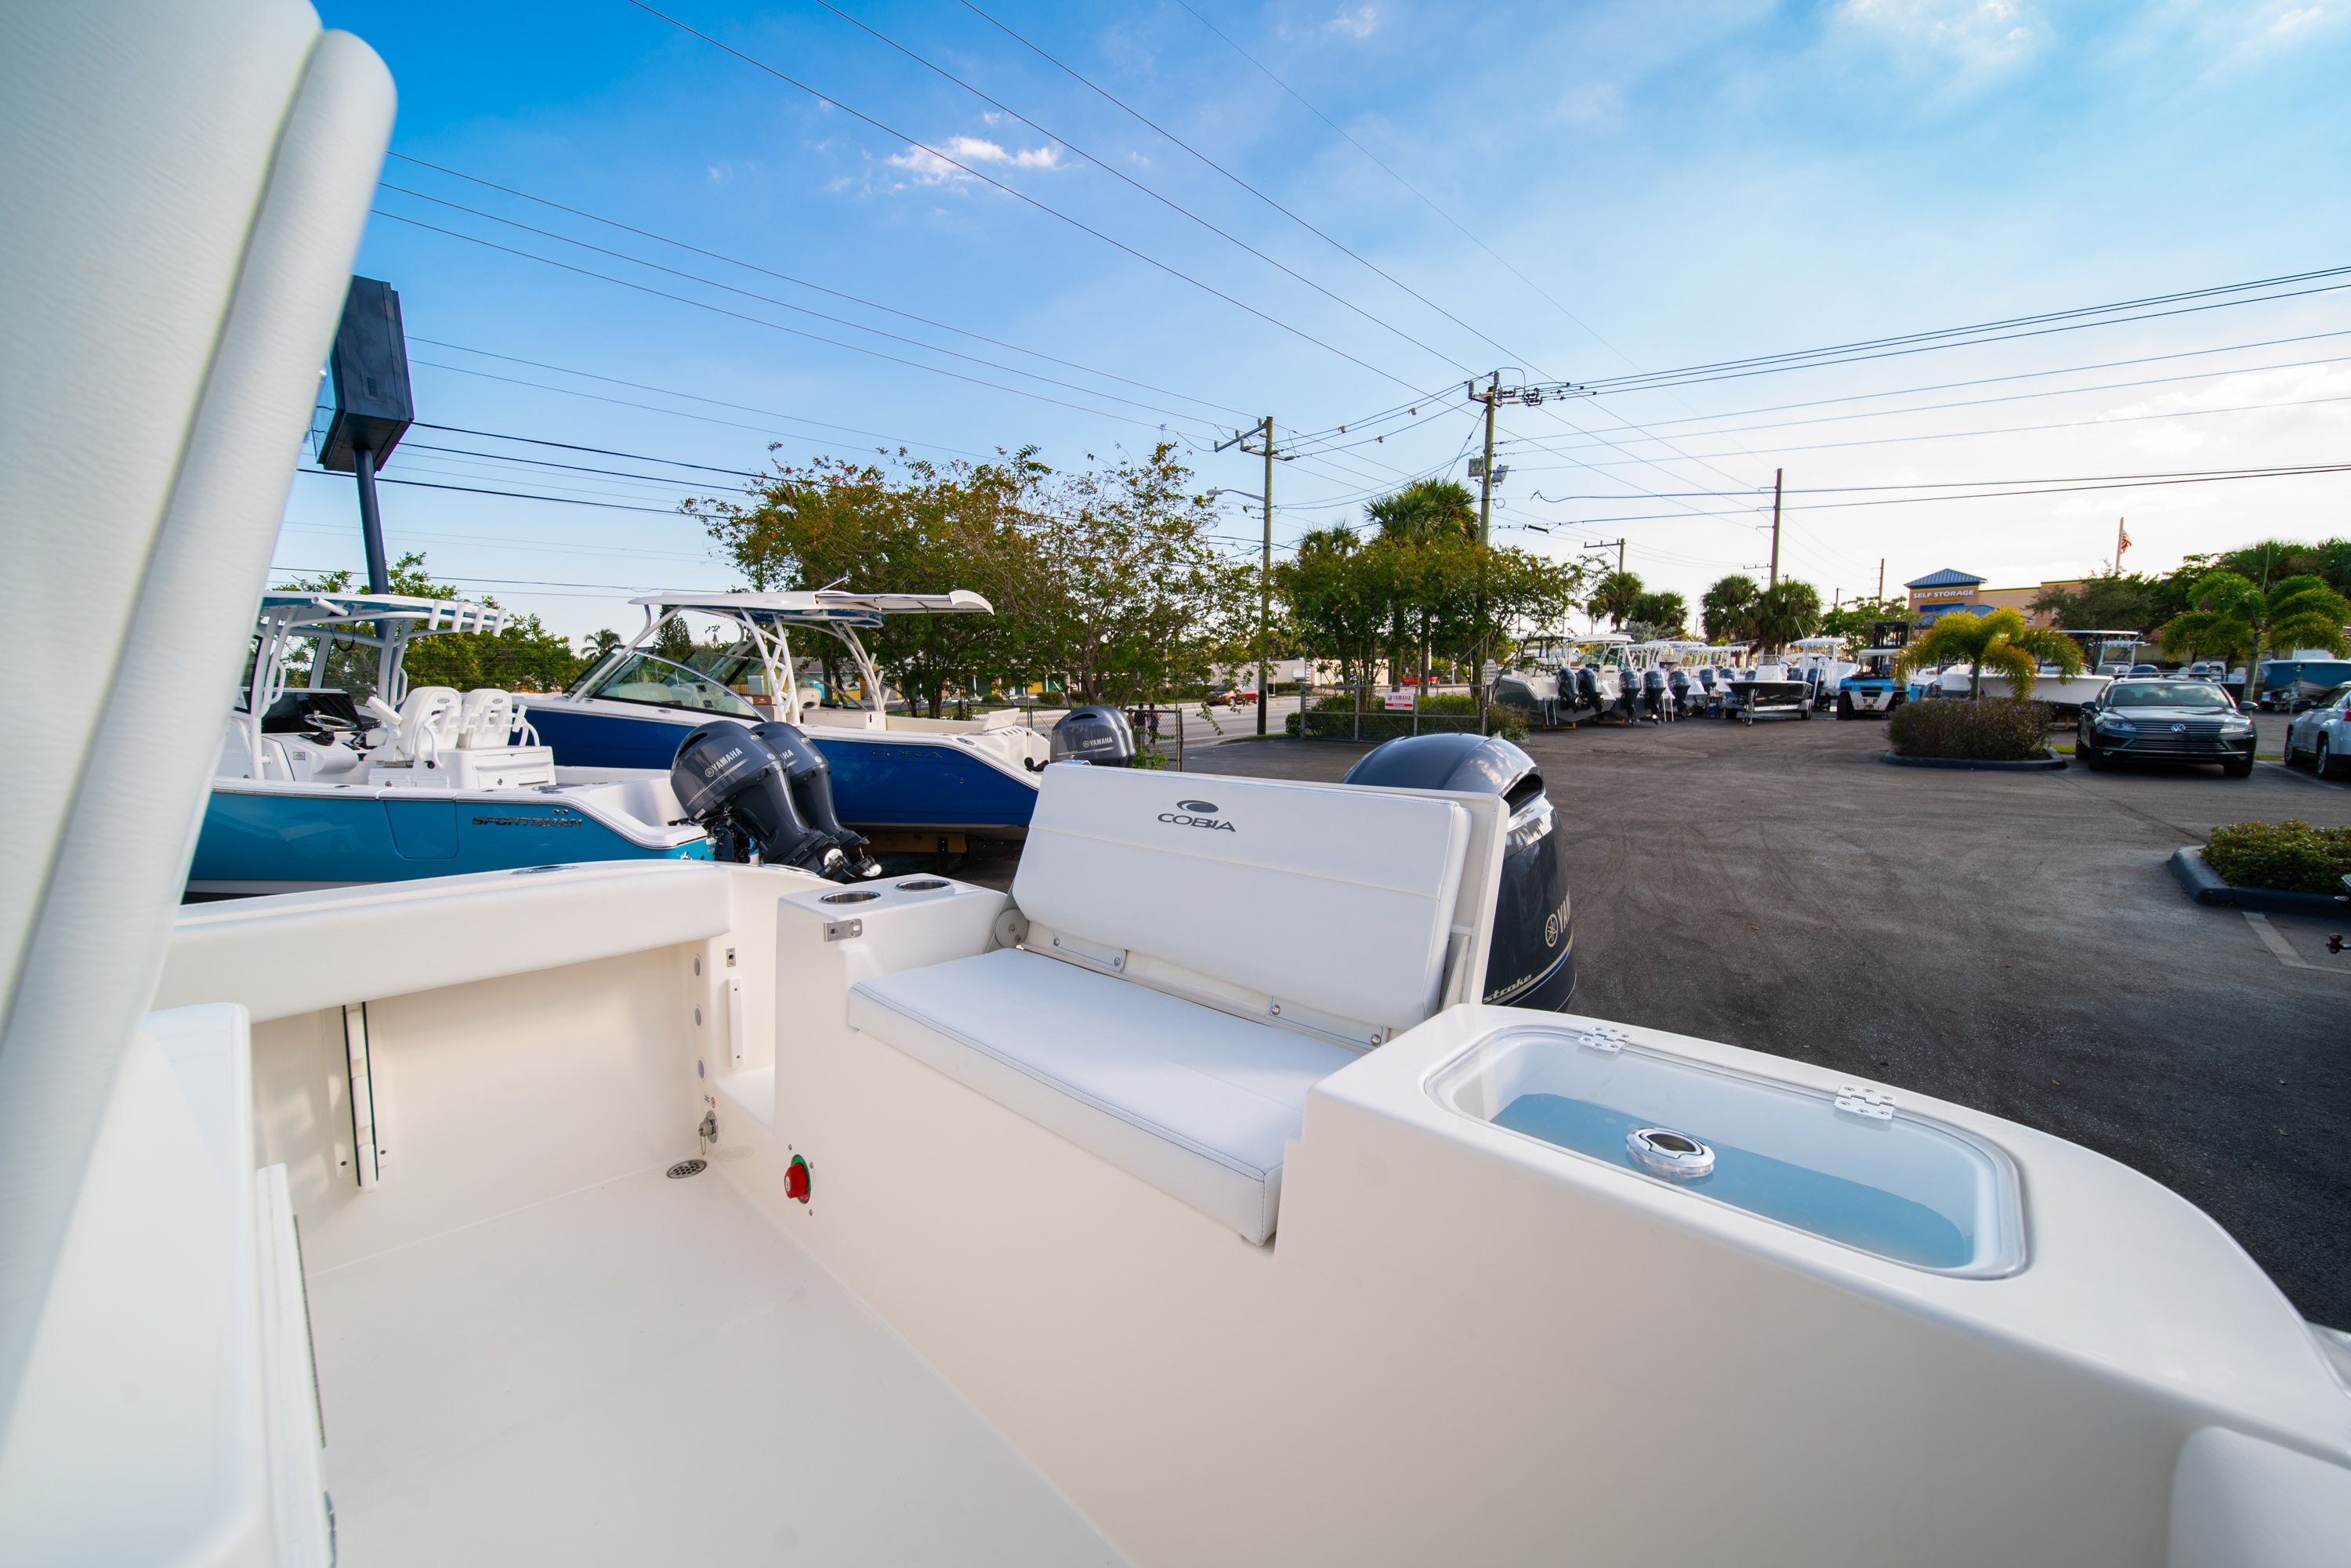 Thumbnail 12 for New 2020 Cobia 220 CC boat for sale in West Palm Beach, FL